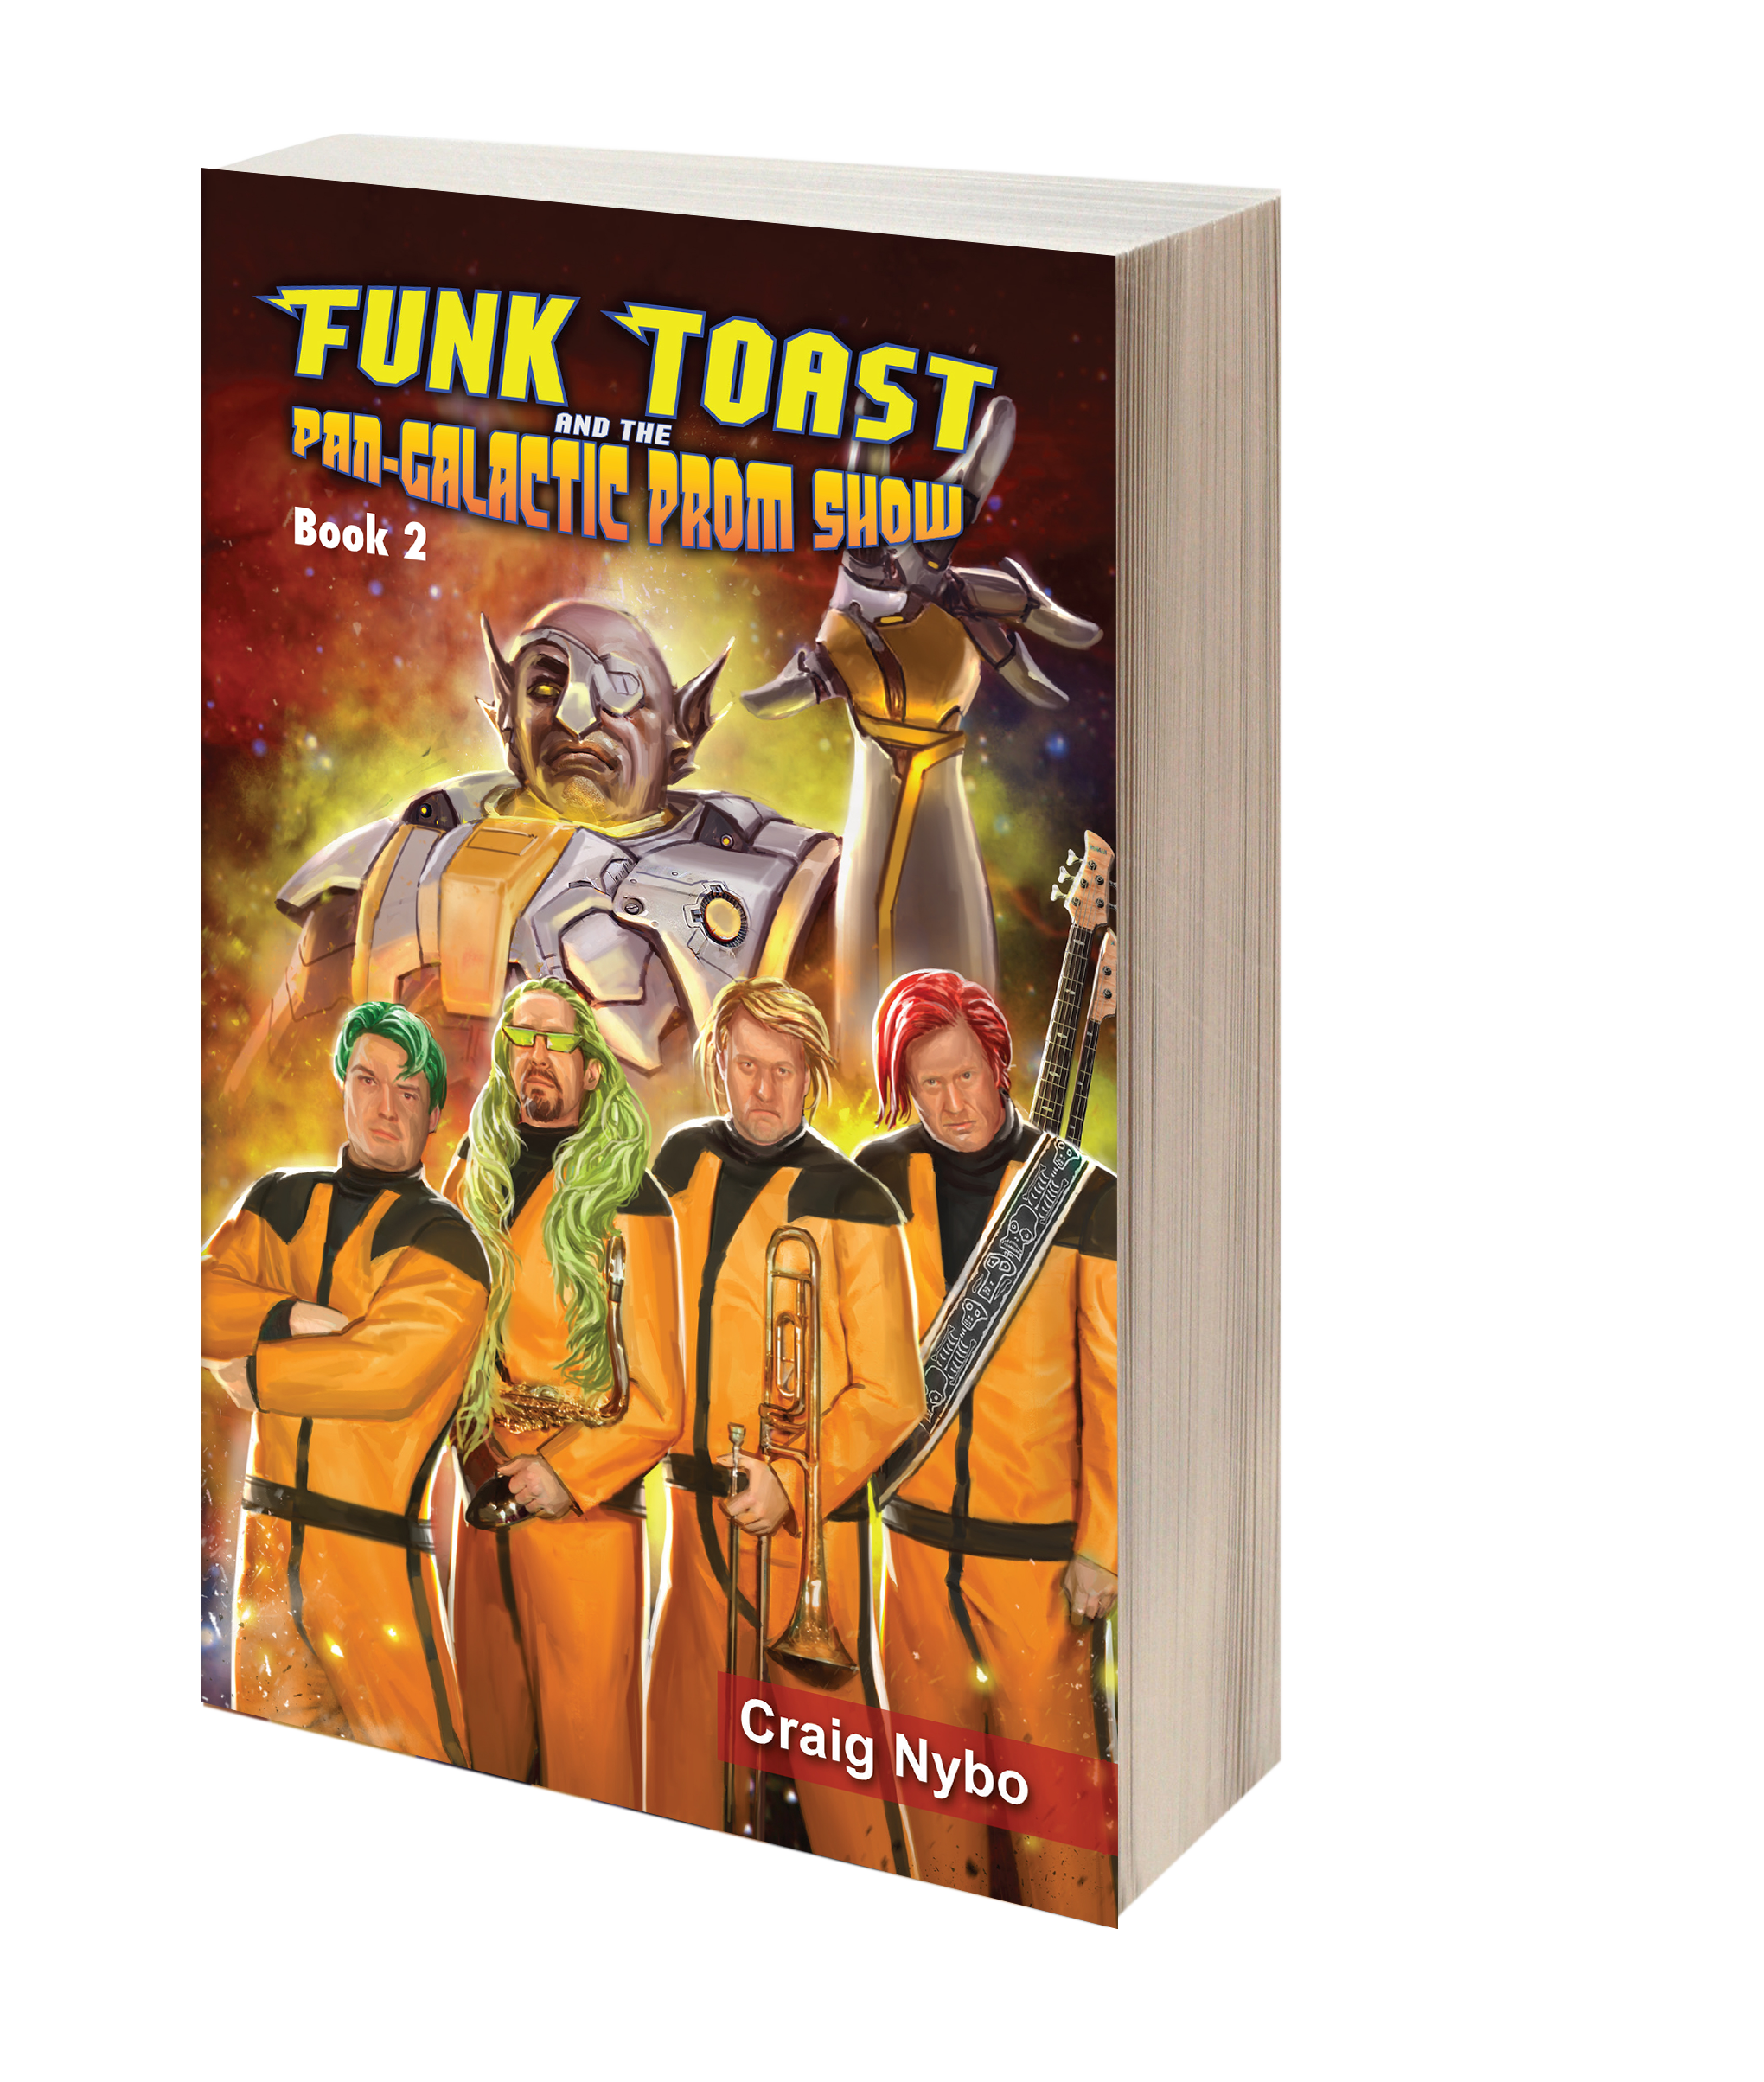 Book - Funk Toast and the Pan-Galactic Prom Show